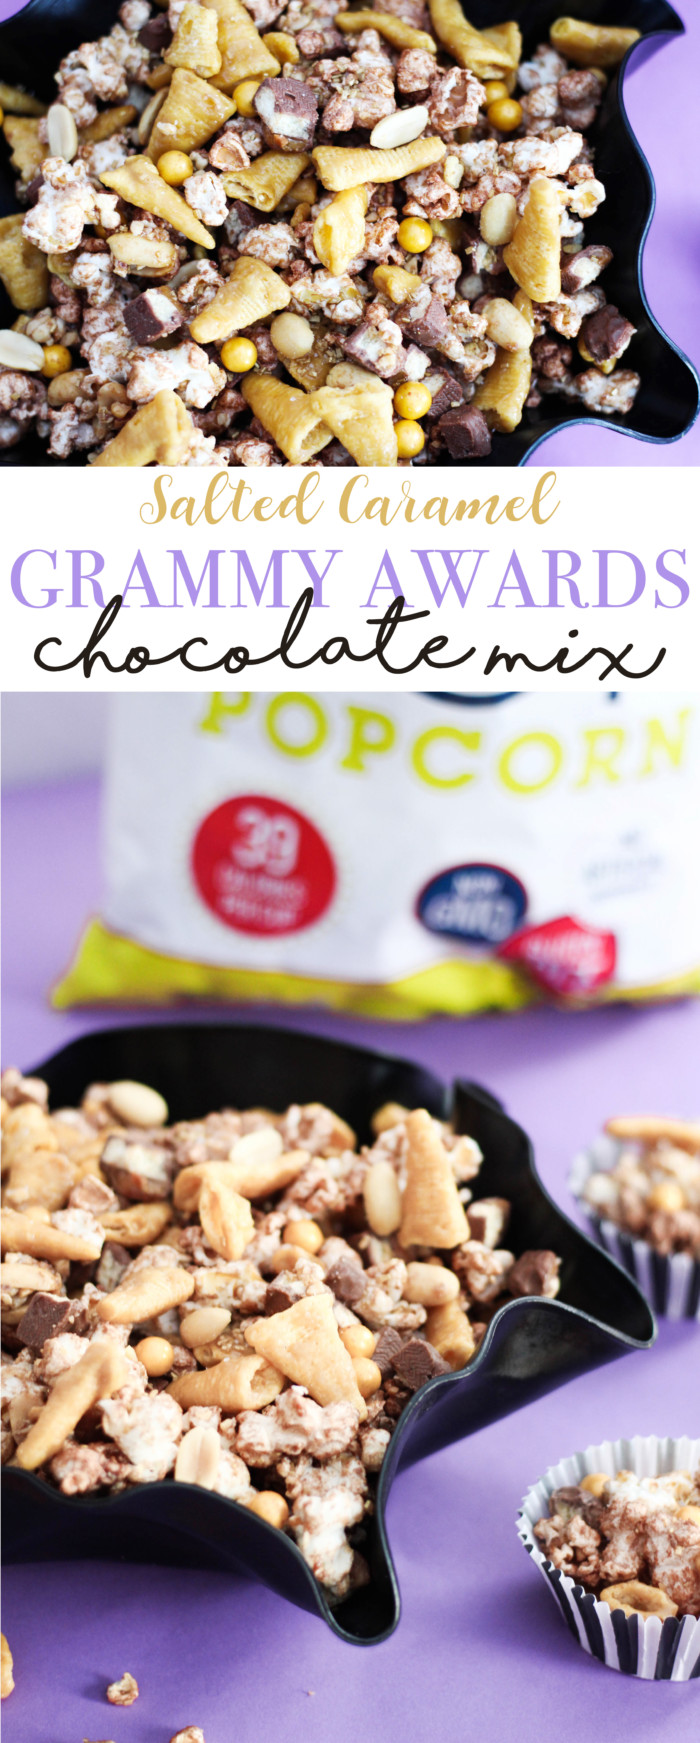 "Salty & sweet chocolate caramel snack mix featuring SkinnyPop and little ""gramophones"", perfect for a Grammy Awards watching party!"